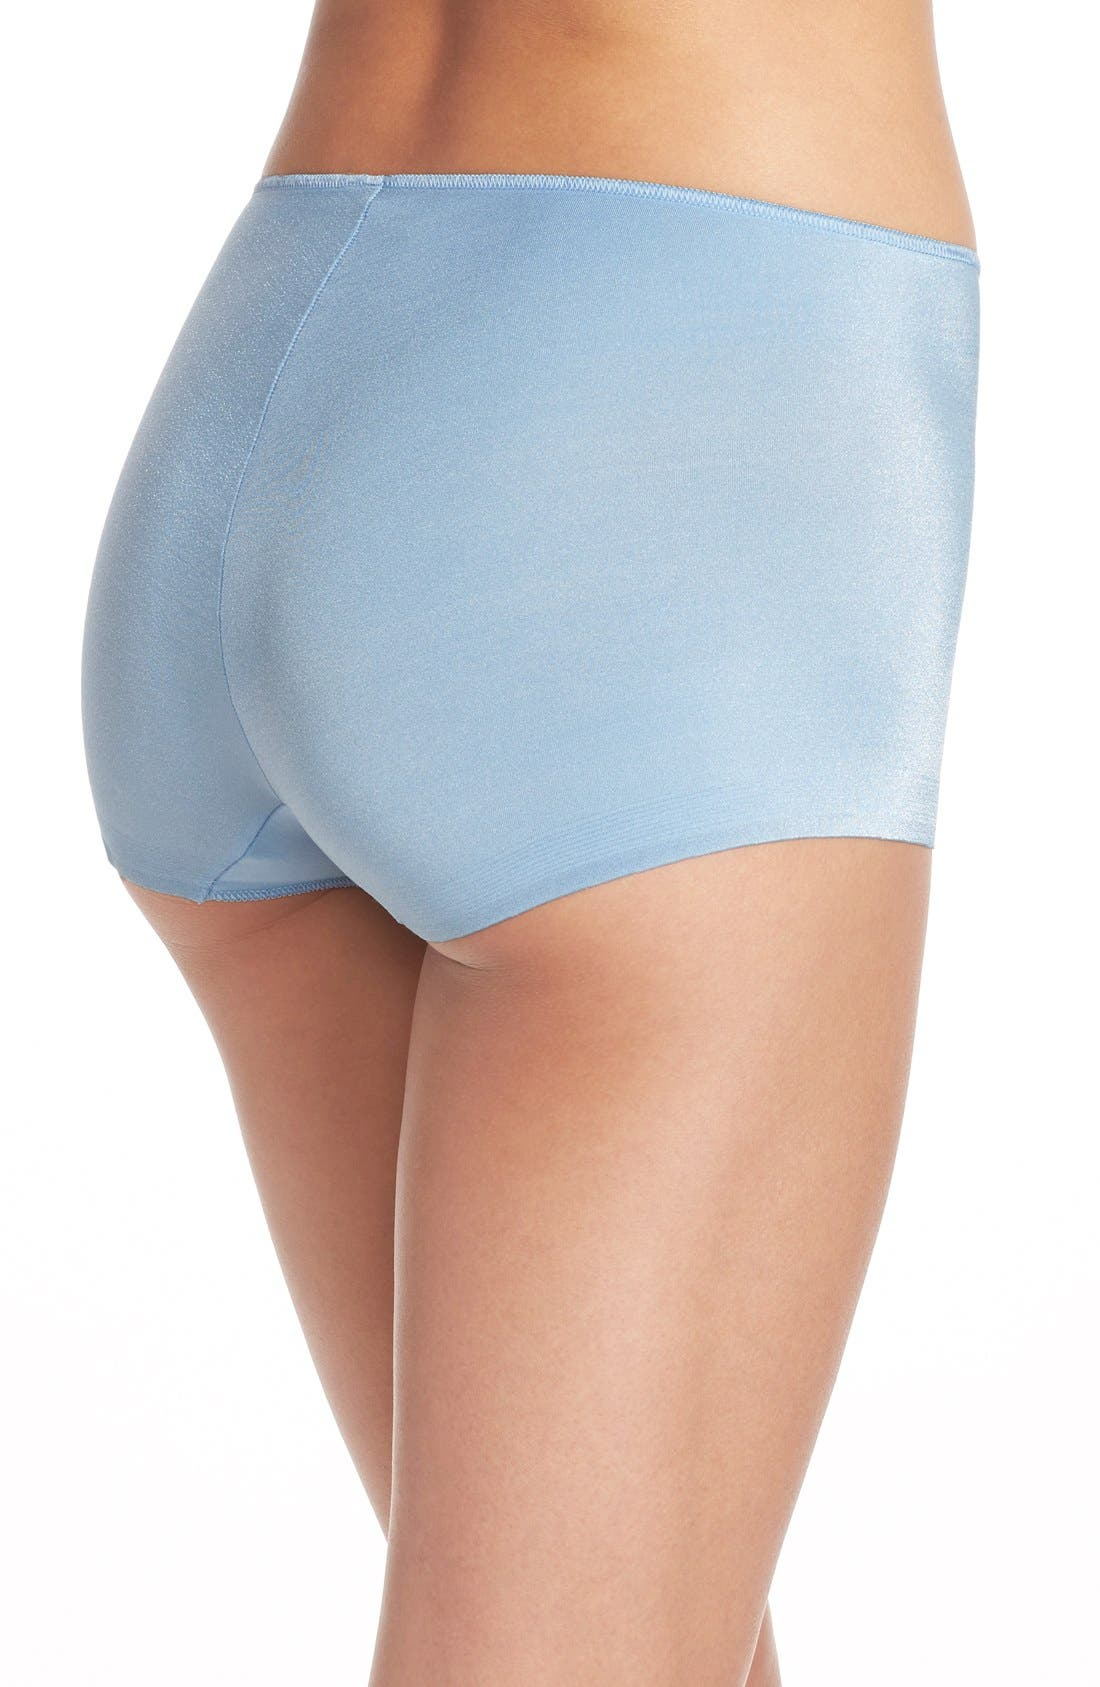 Alternate Image 2  - TC Wonderful Edge® Boyshorts (3 for $39)